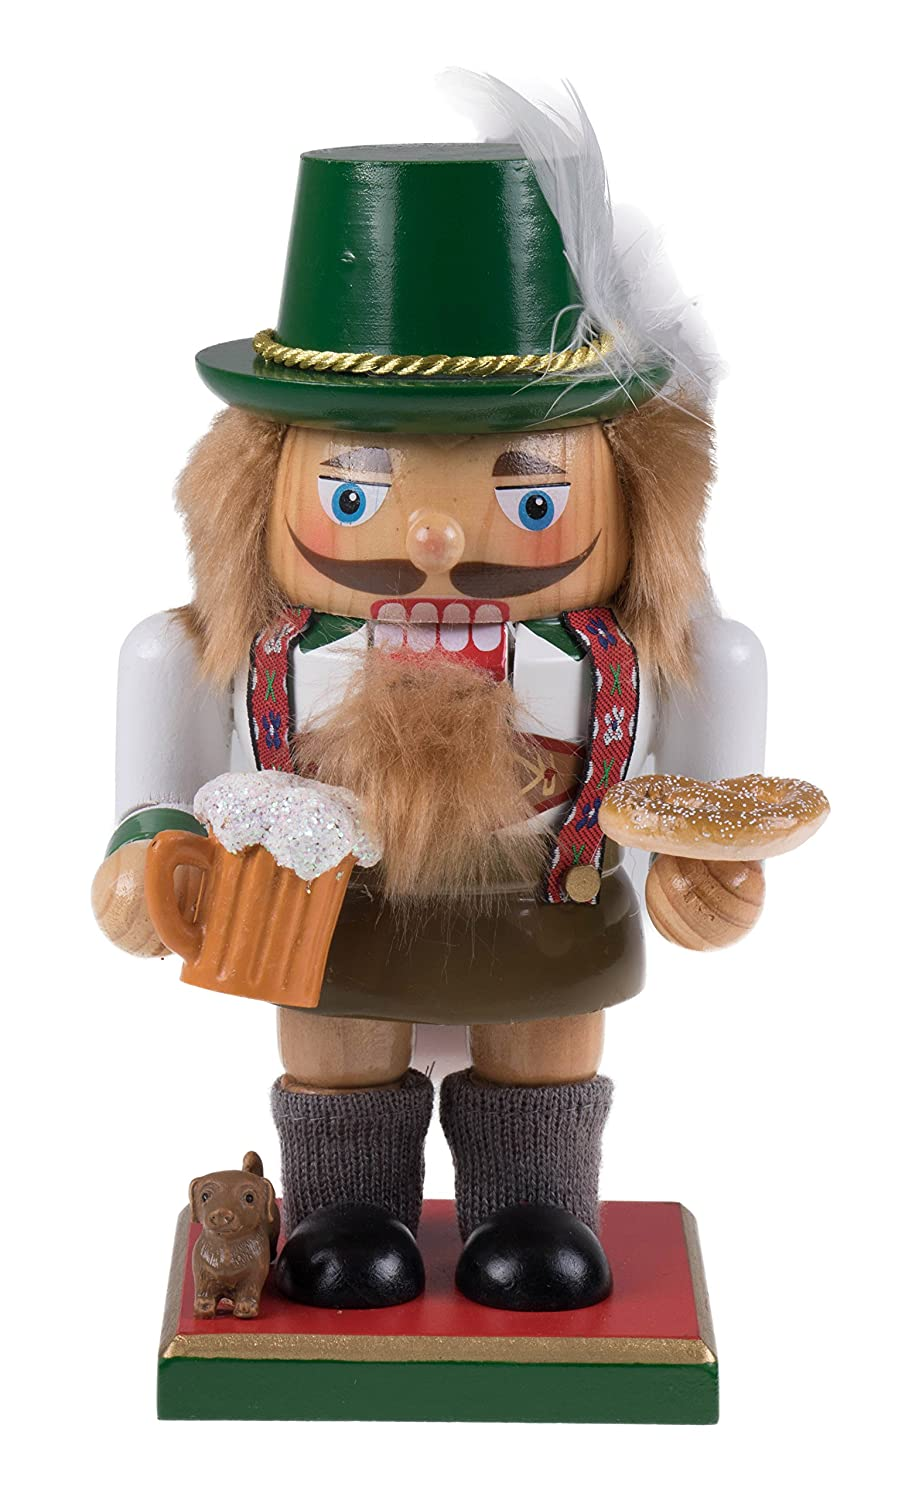 Classic Chubby German Nutcracker by Clever Creations | Wearing Lederhosen & Holding a Mug | Festive Collectible Decor | Perfect for Shelves and Tables | 100% Wood | 7.25